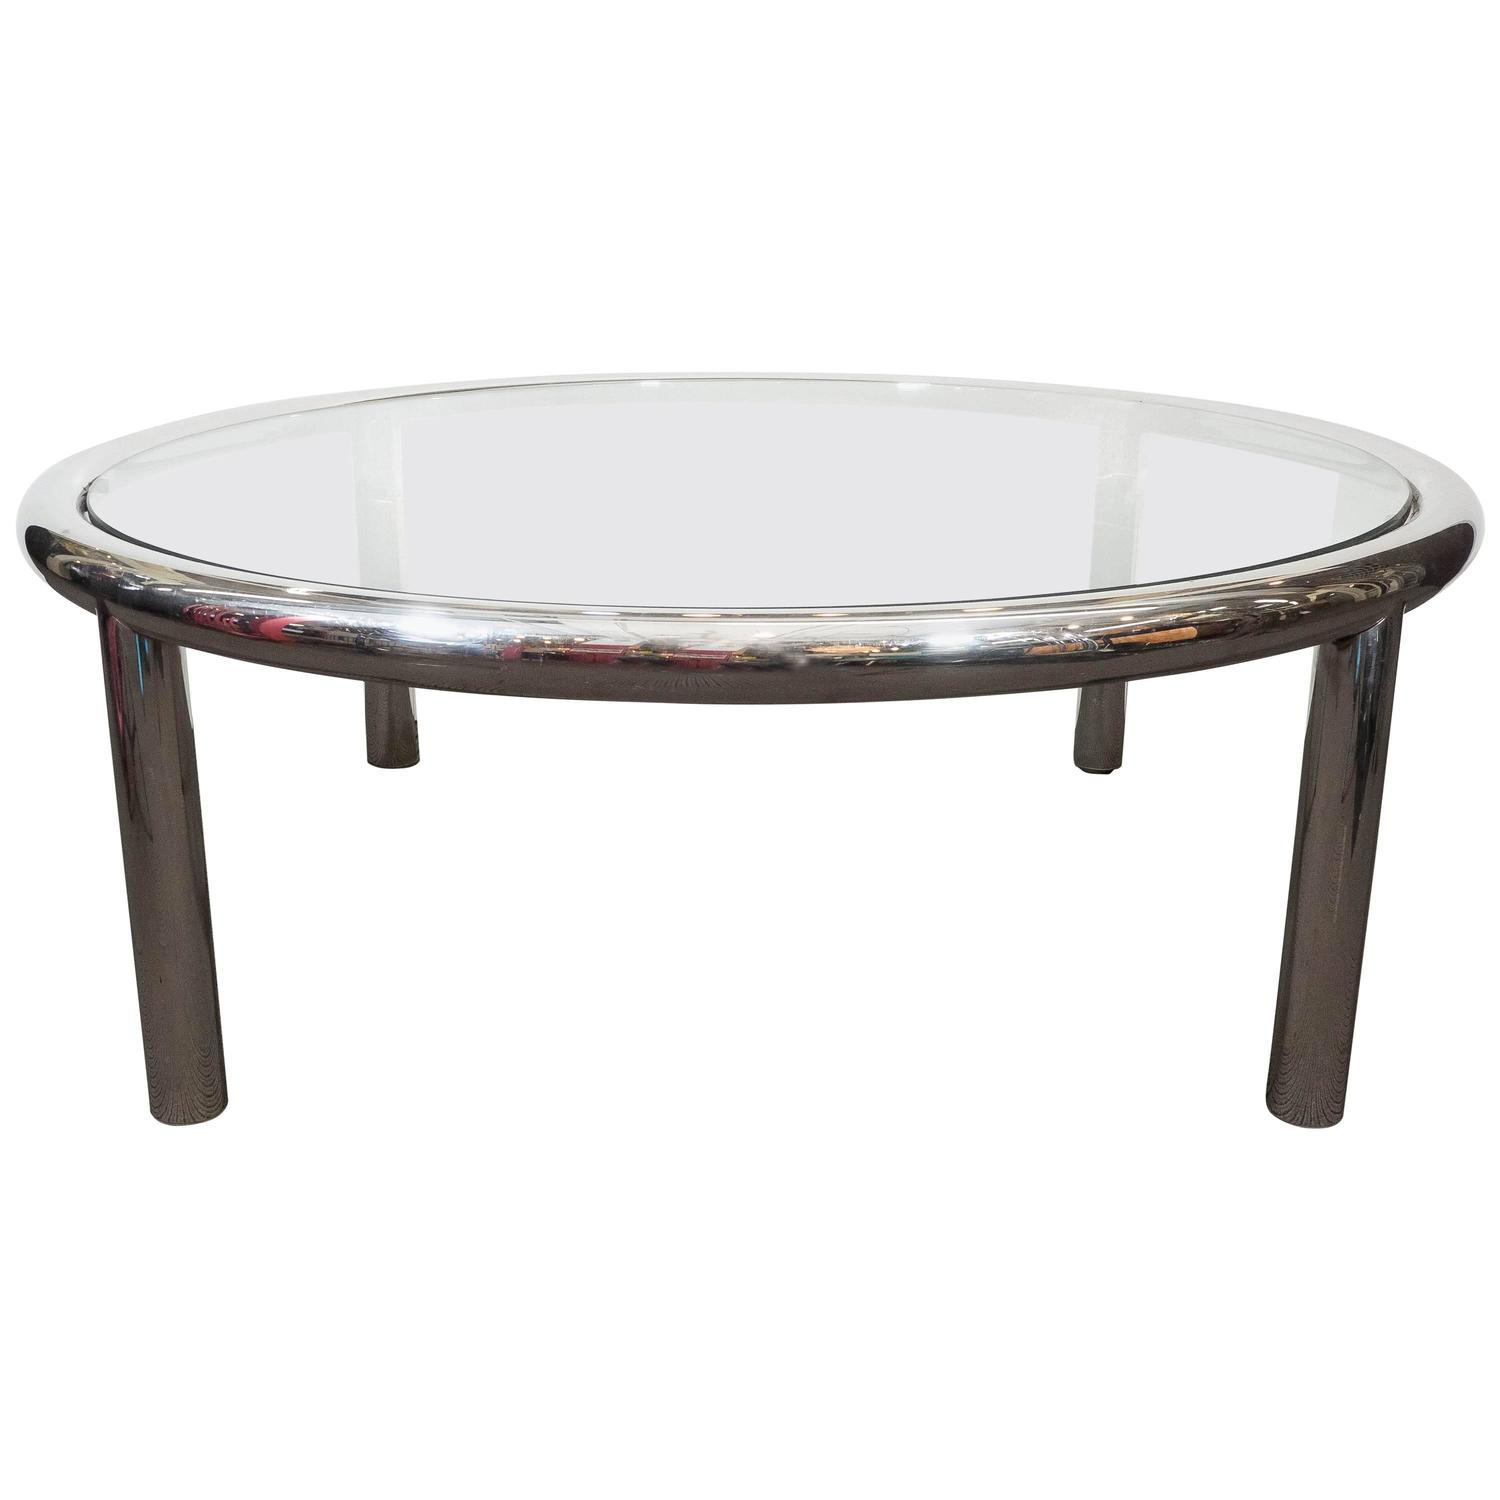 Tubular chrome glass top round coffee table for sale at for Glass top circle coffee table